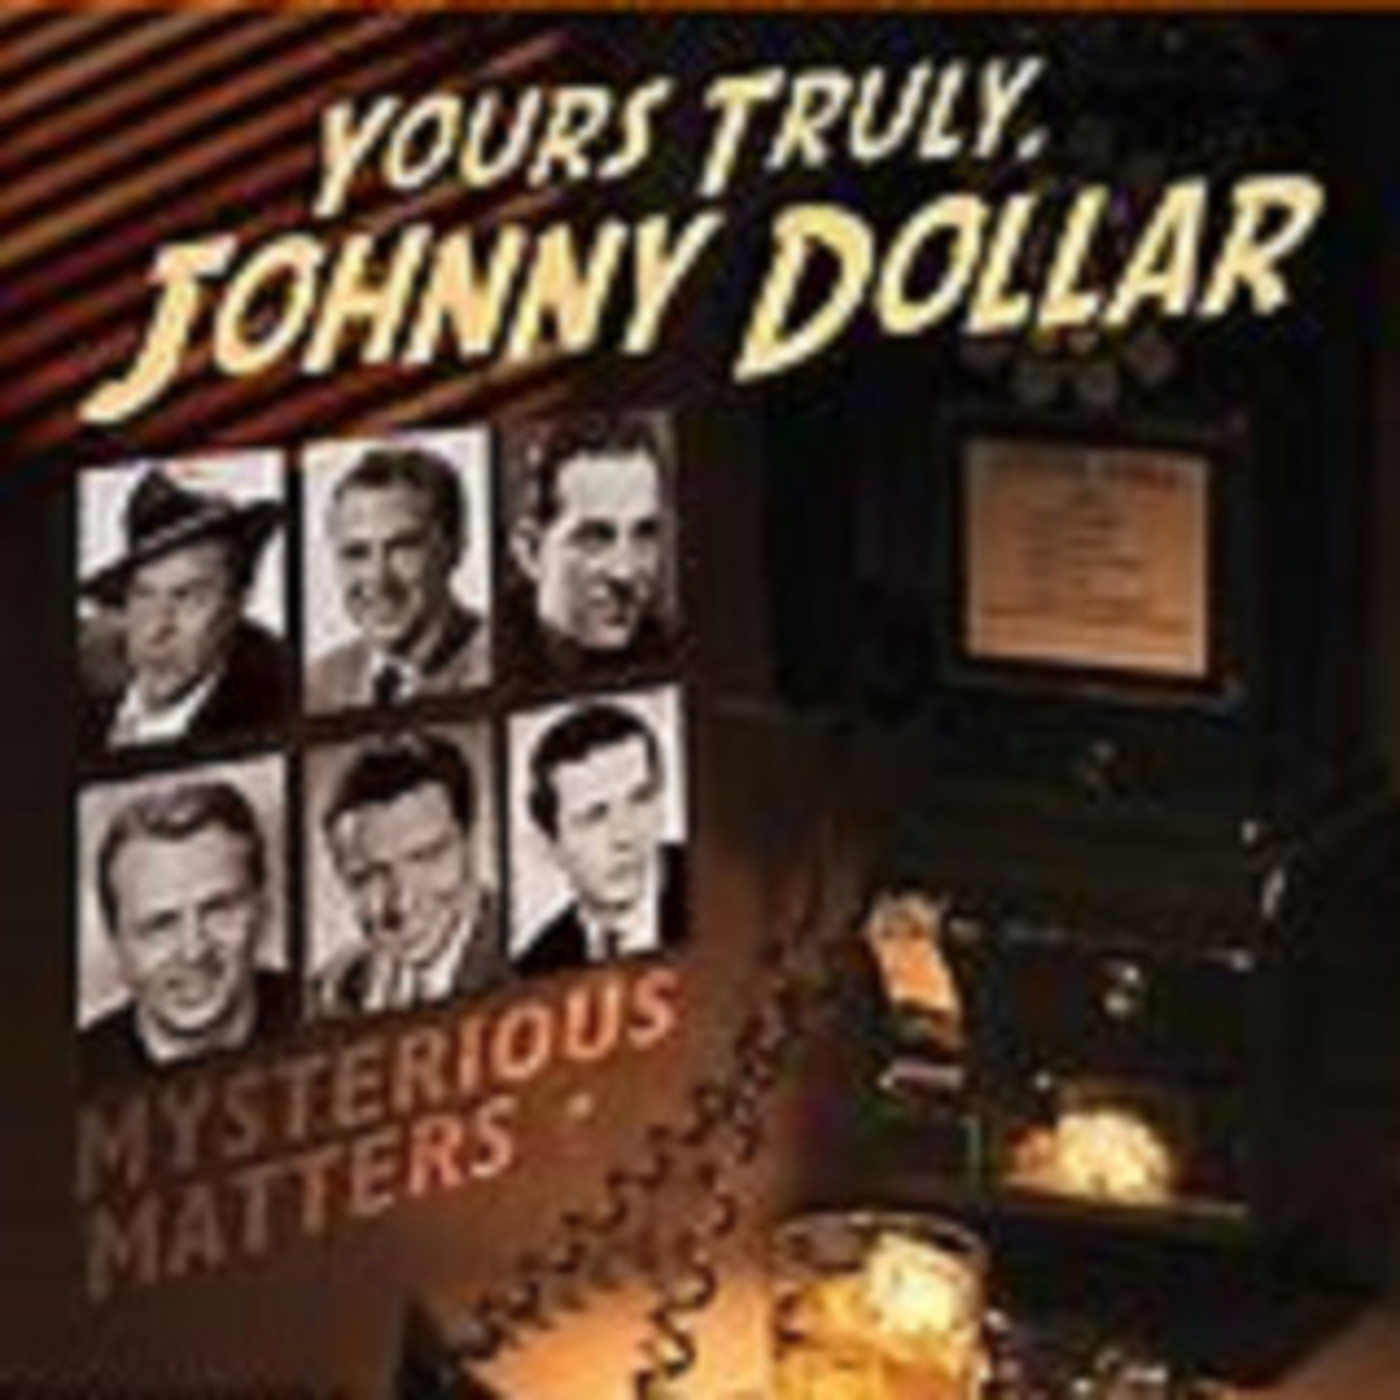 Yours Truly, Johnny Dollar - 081962, episode 805 - The Lorelei Matter (AFRS)